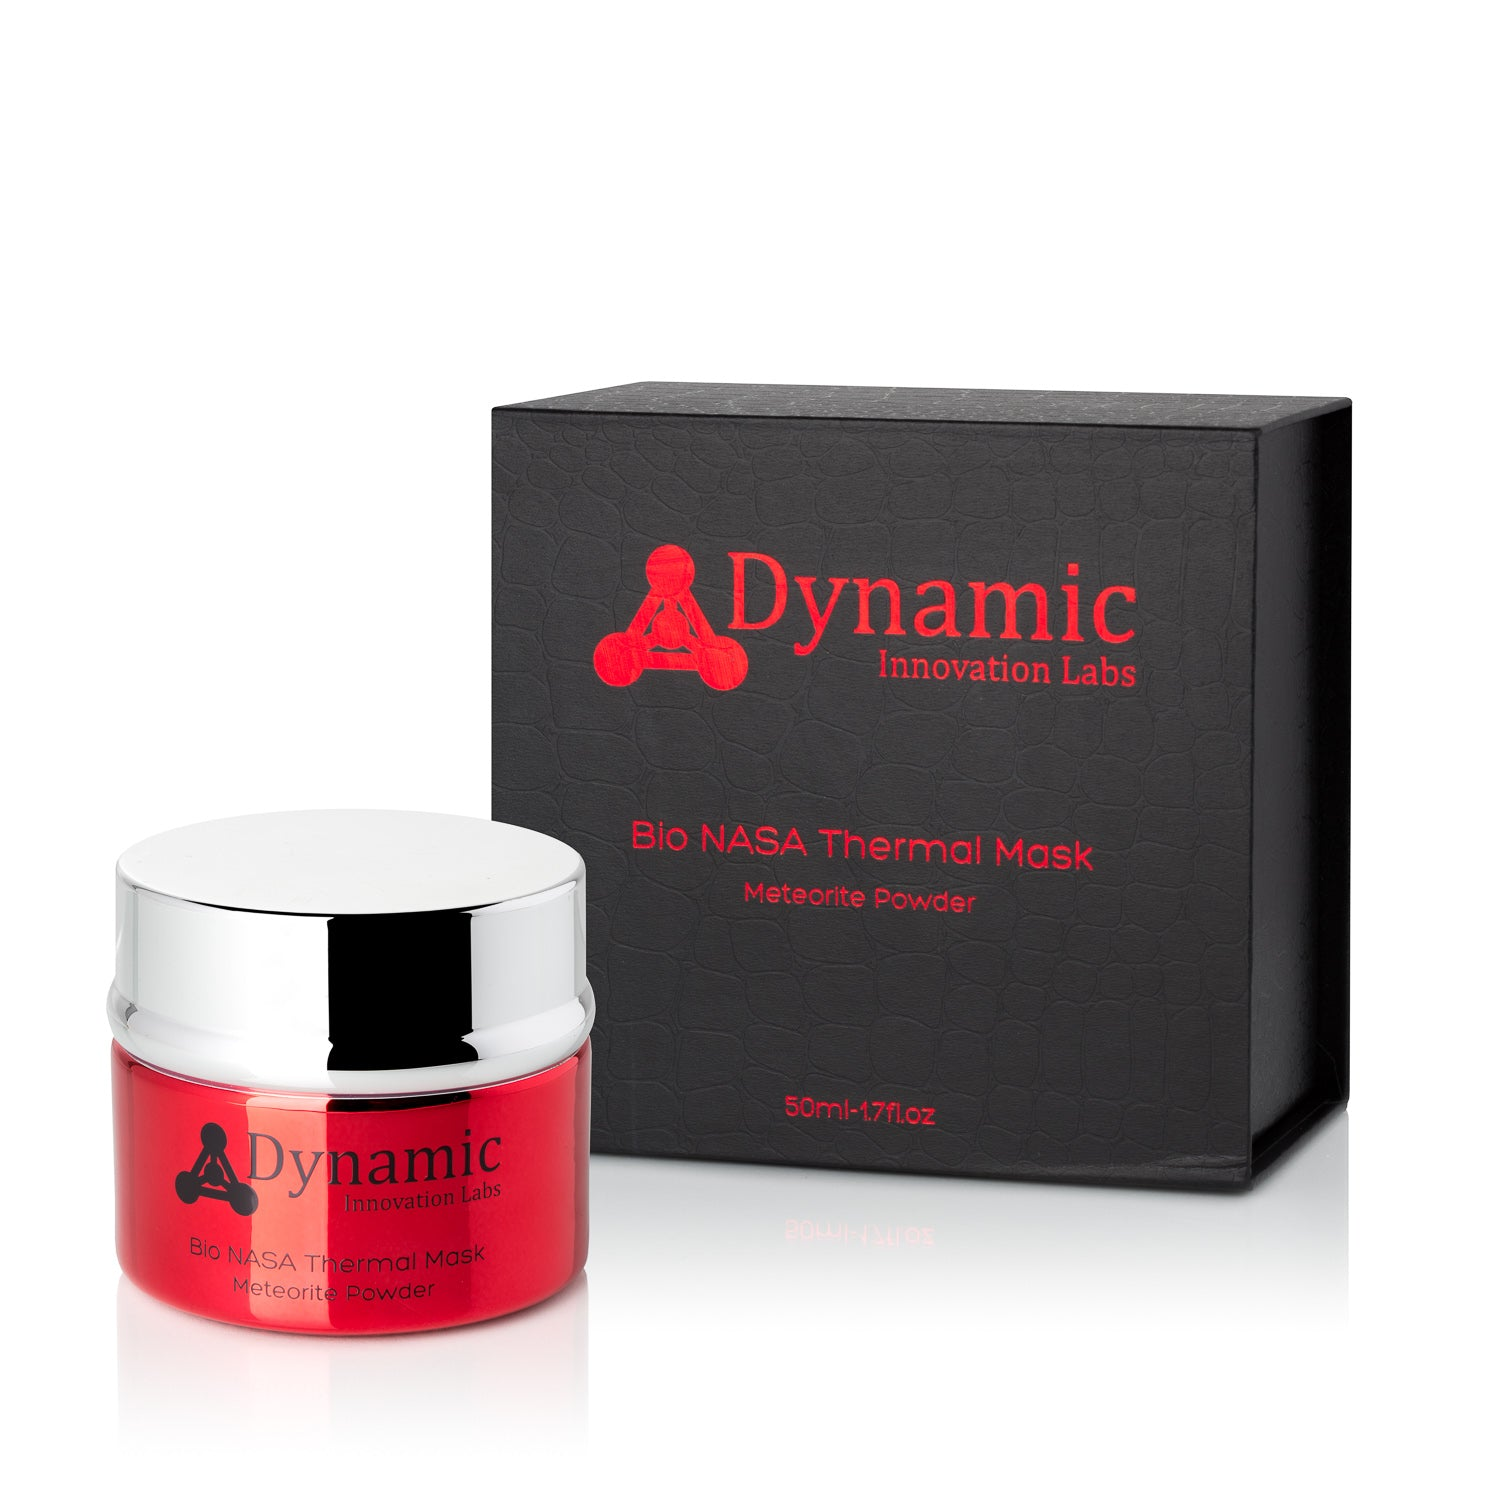 DYNAMIC INNOVATION - Bio NASA Thermal Pore Cleansing Mask with Meteorite Powder Infusion